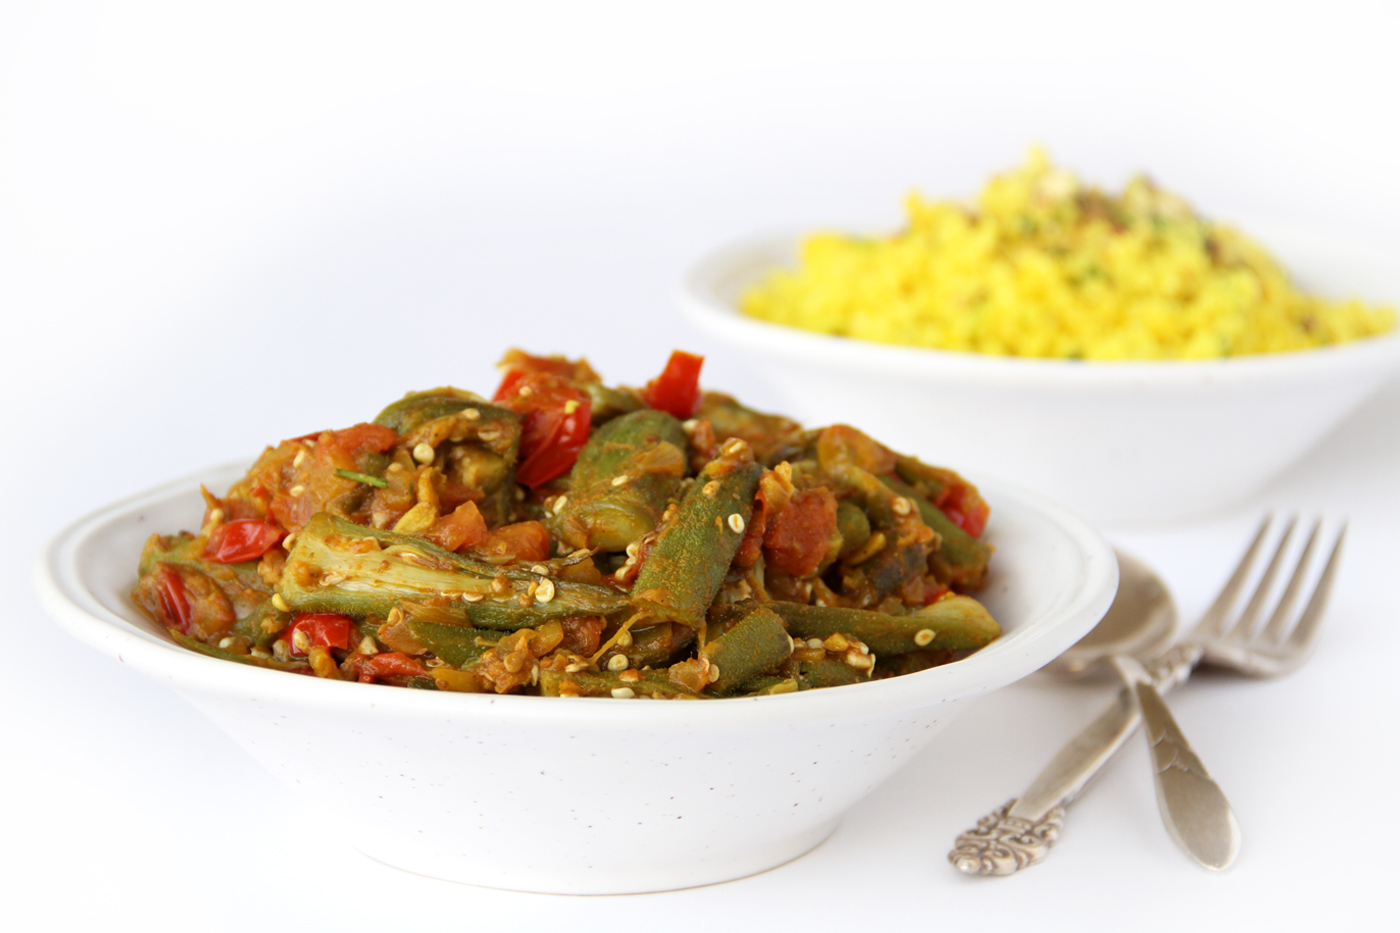 njoy this oil-free vegan okra recipe, that's also called Bhindi Masala, a popular Indian dish made with okra, onion, tomatoes & spices.